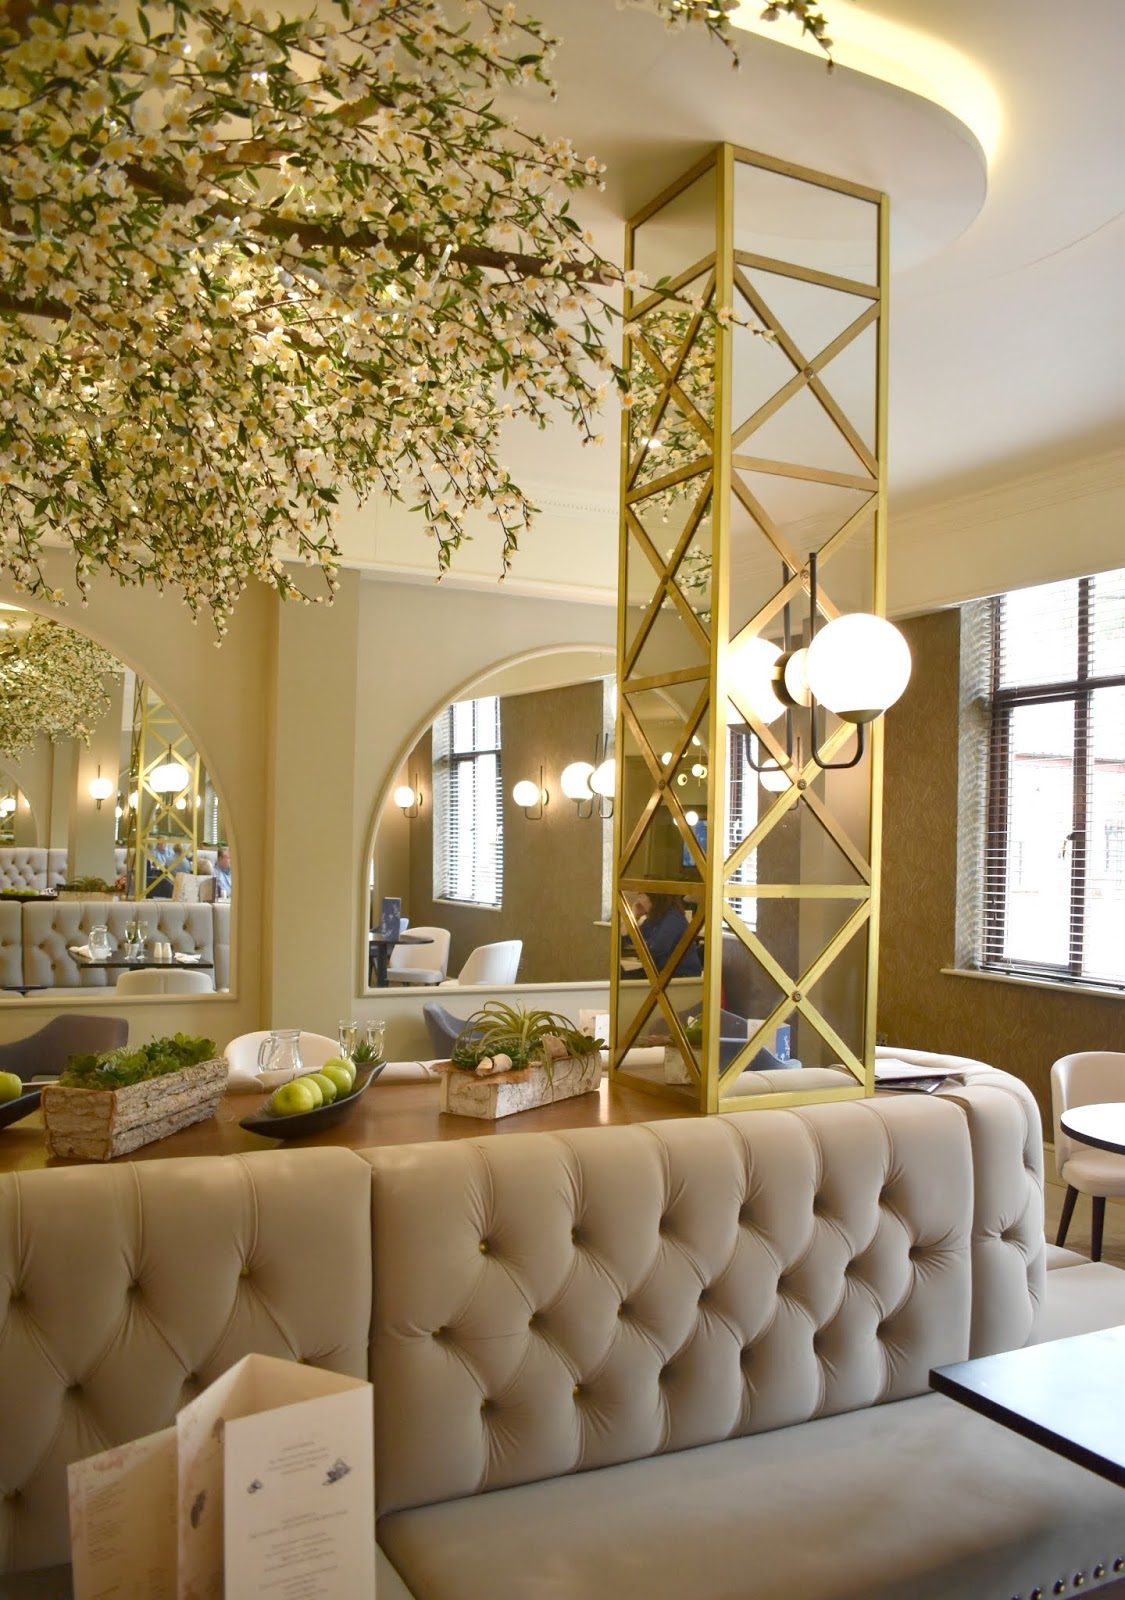 Spa Break in the North East - Redworth Hall Hotel